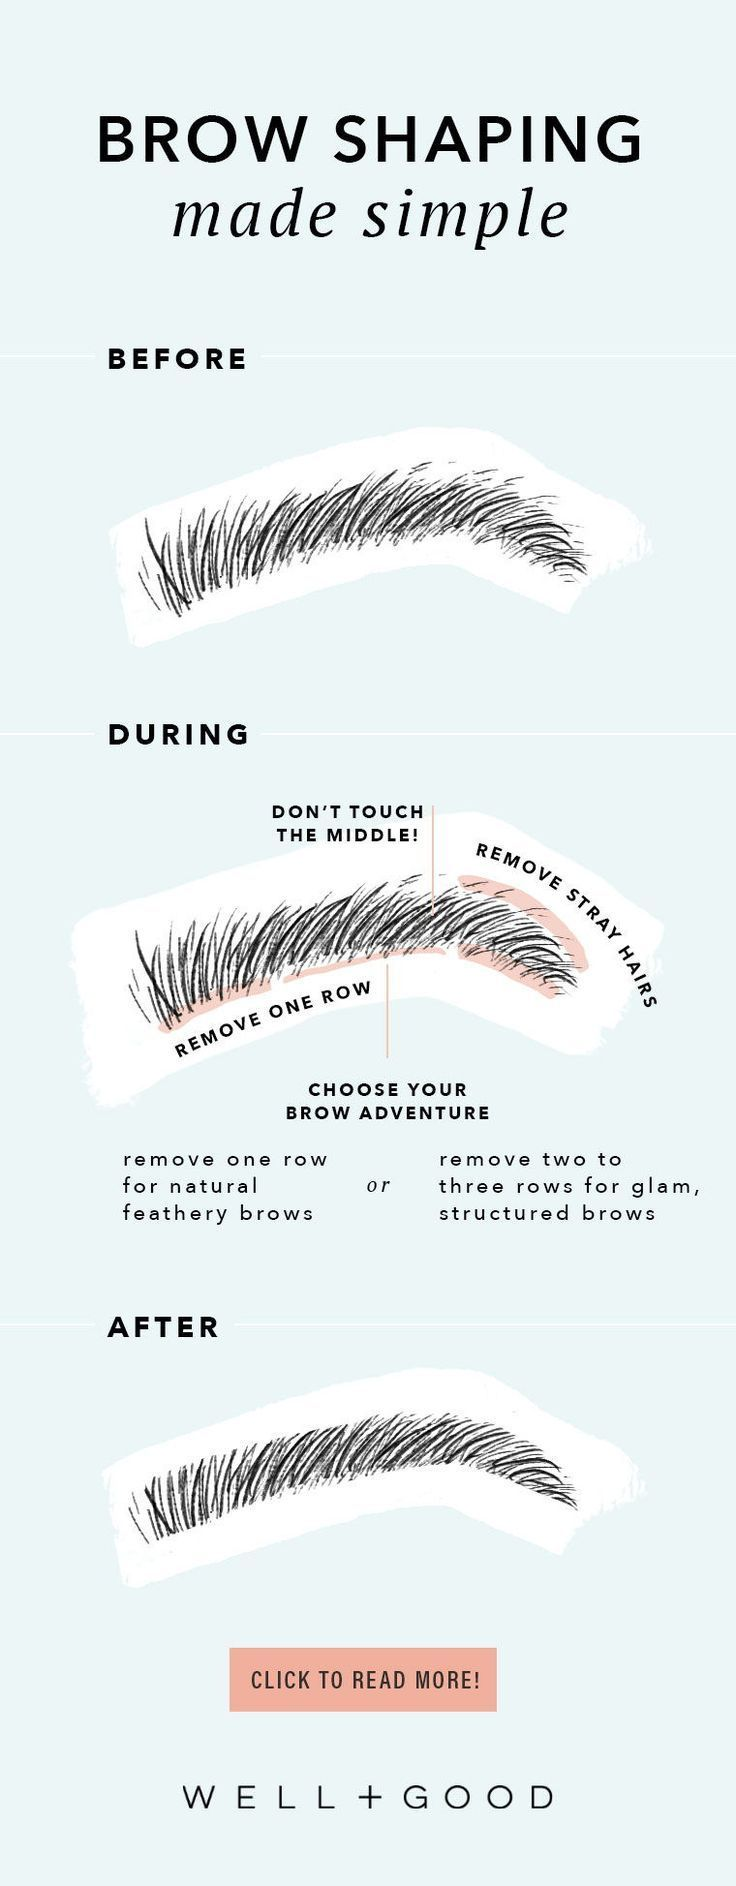 5 tricks for gorgeous eyebrows | Well+Good